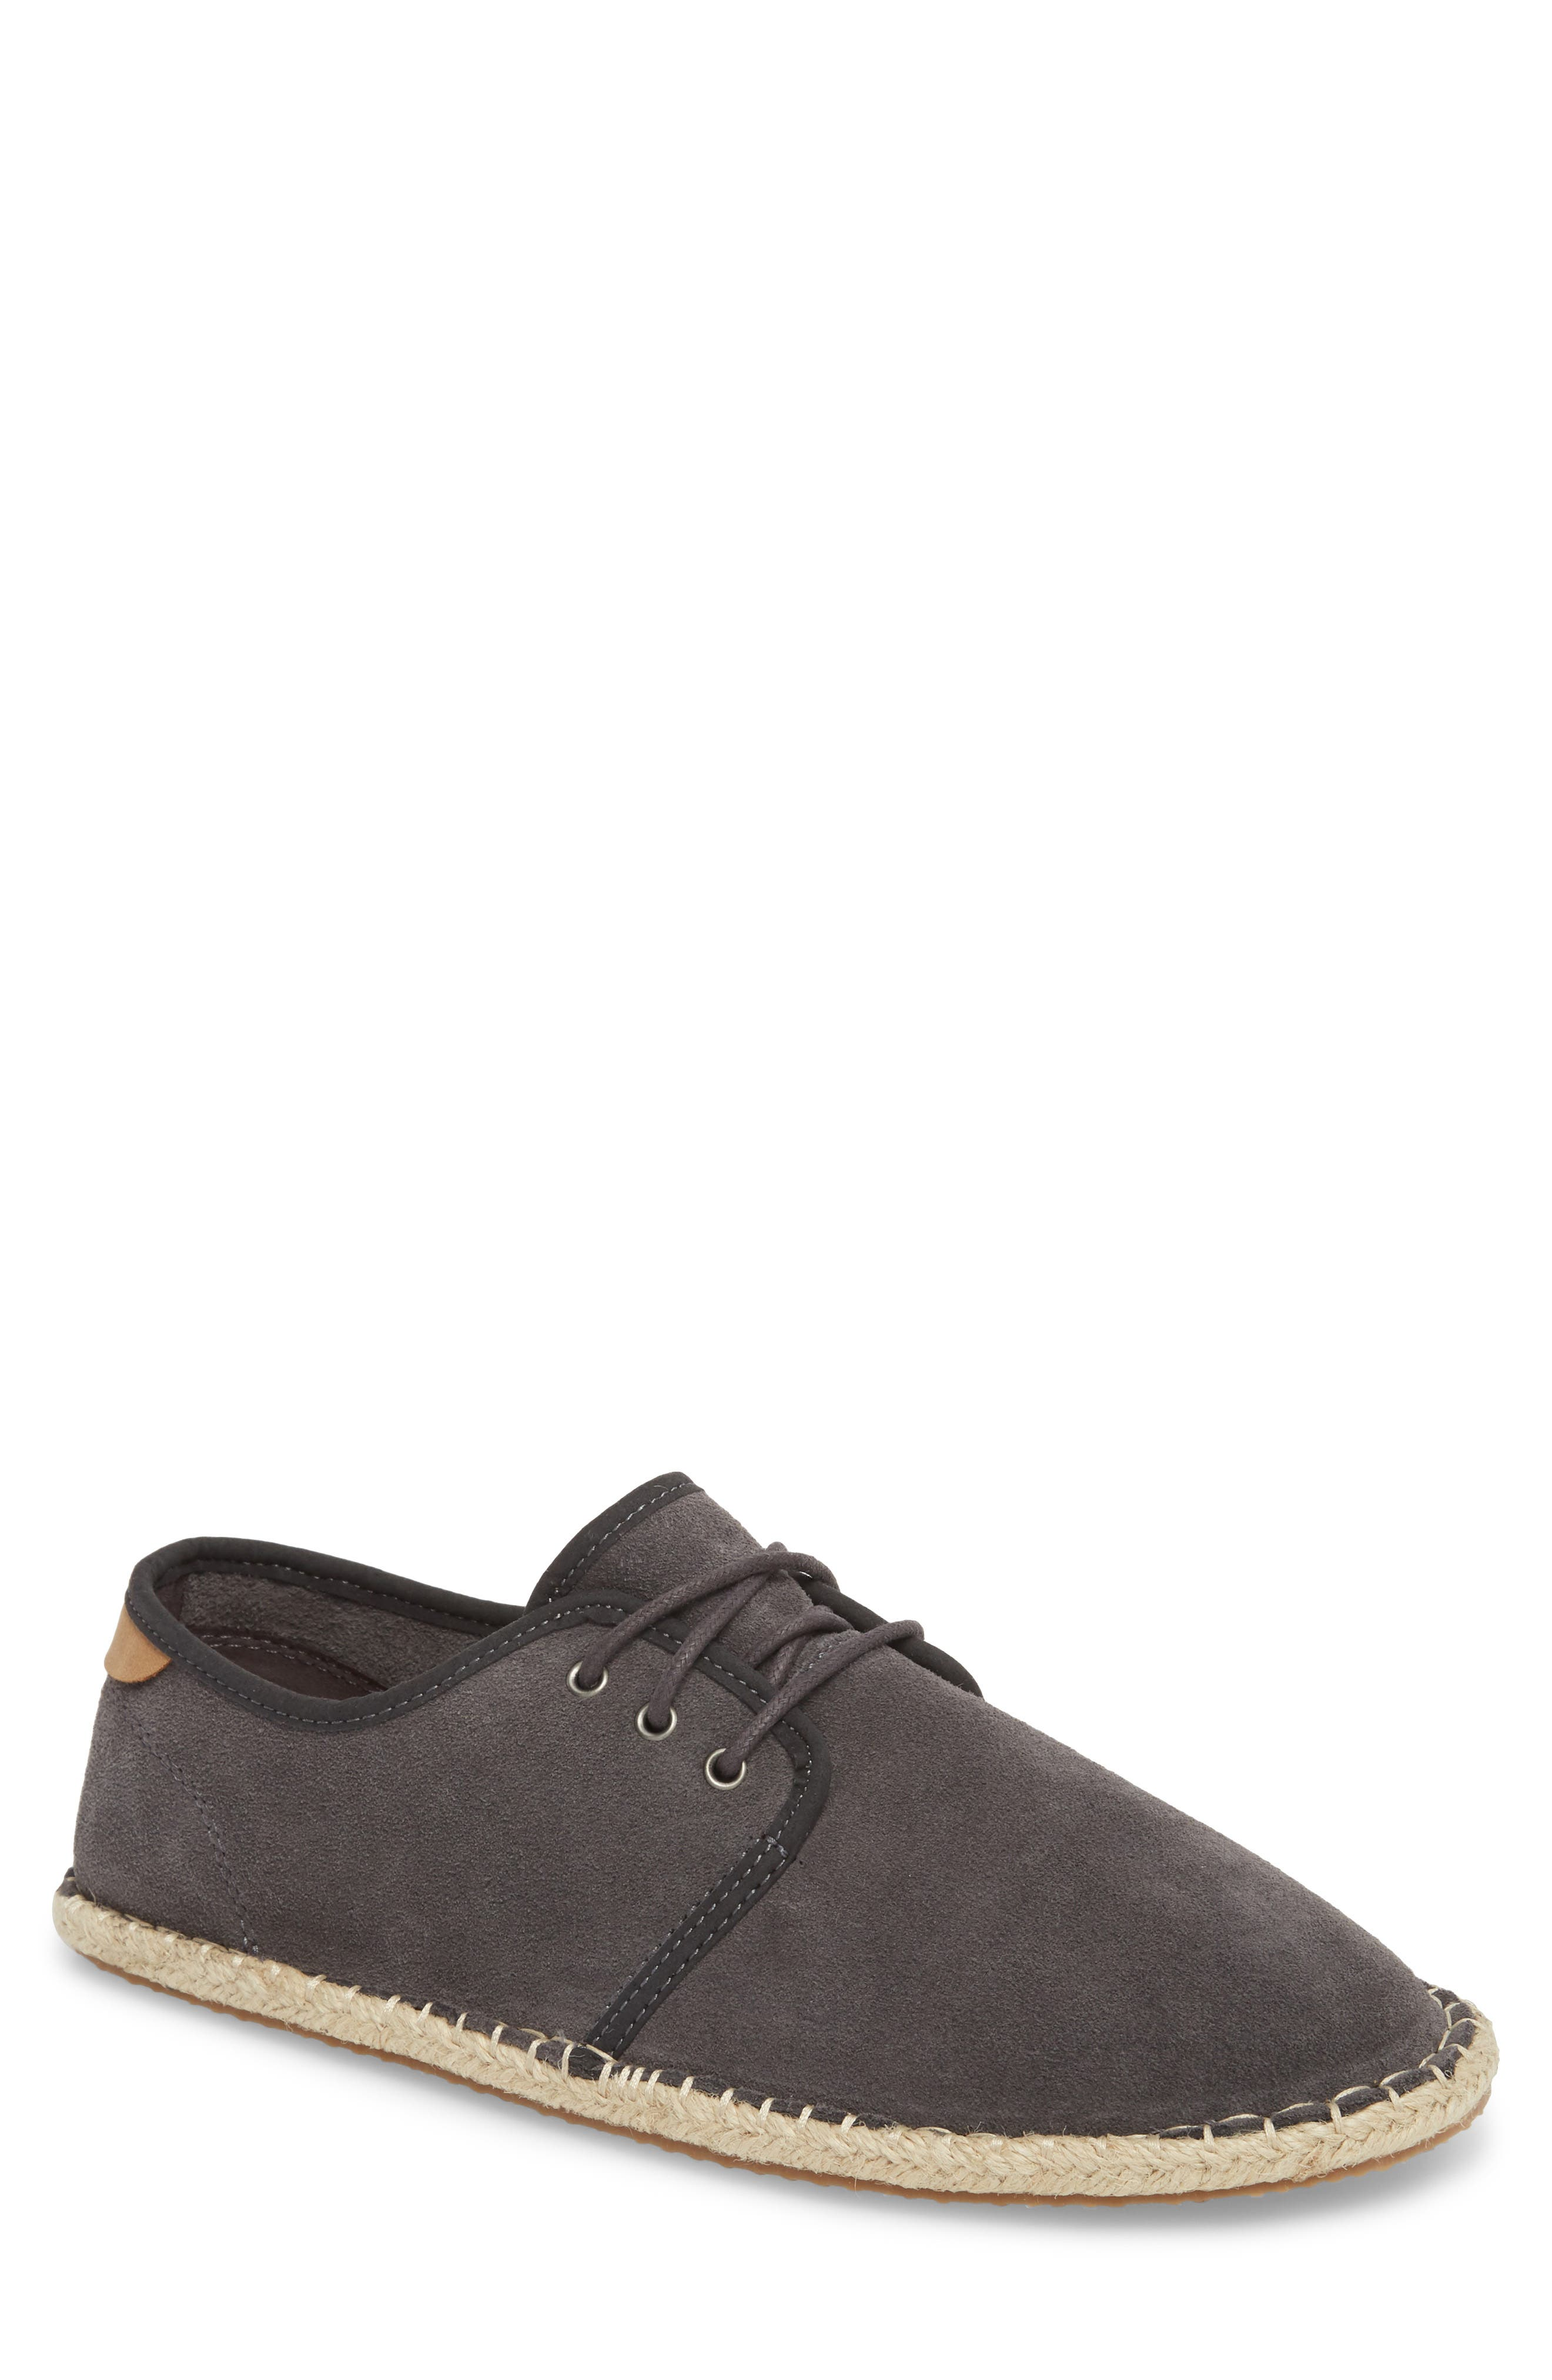 Diego Deconstructed Derby,                         Main,                         color, FORGED IRON GREY SUEDE